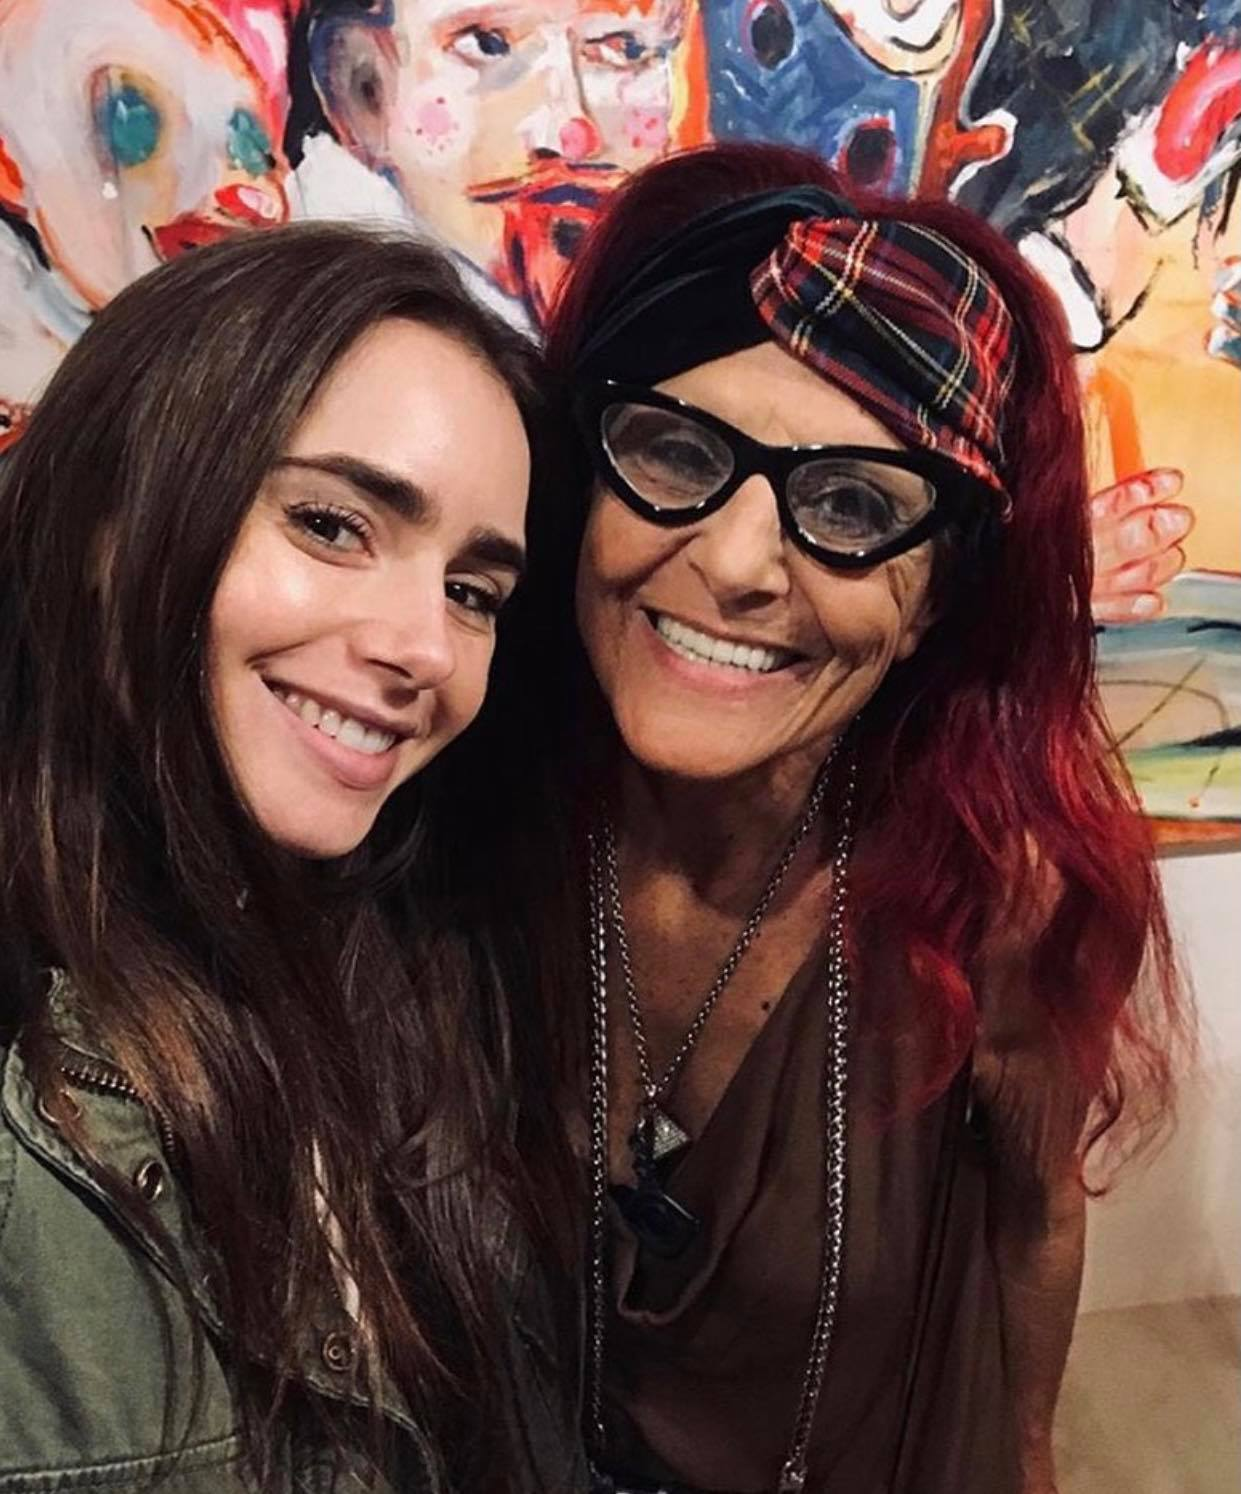 lily collins with patriciafiled